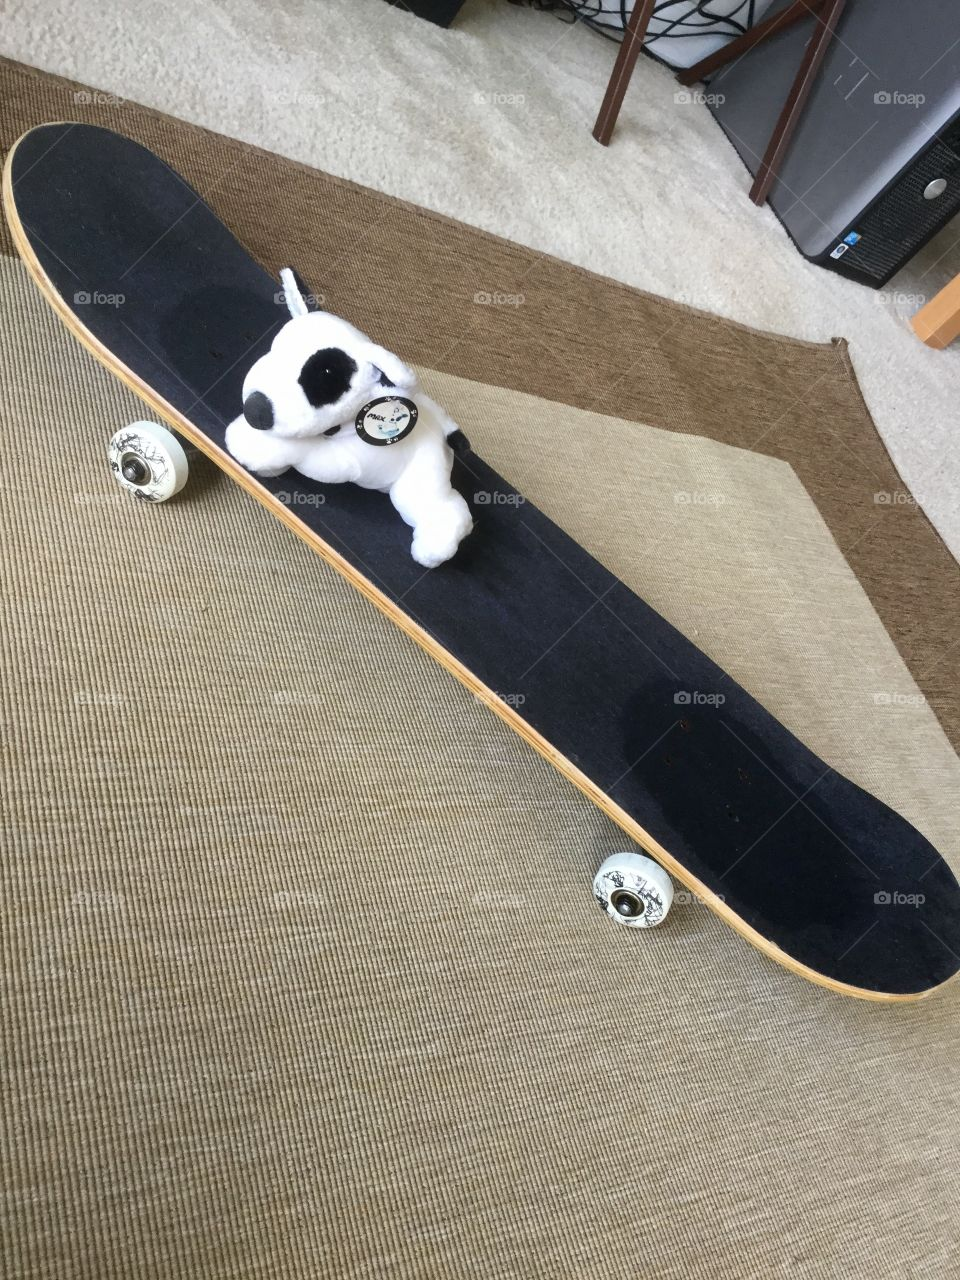 X Games Skateboard with white  plush puppy